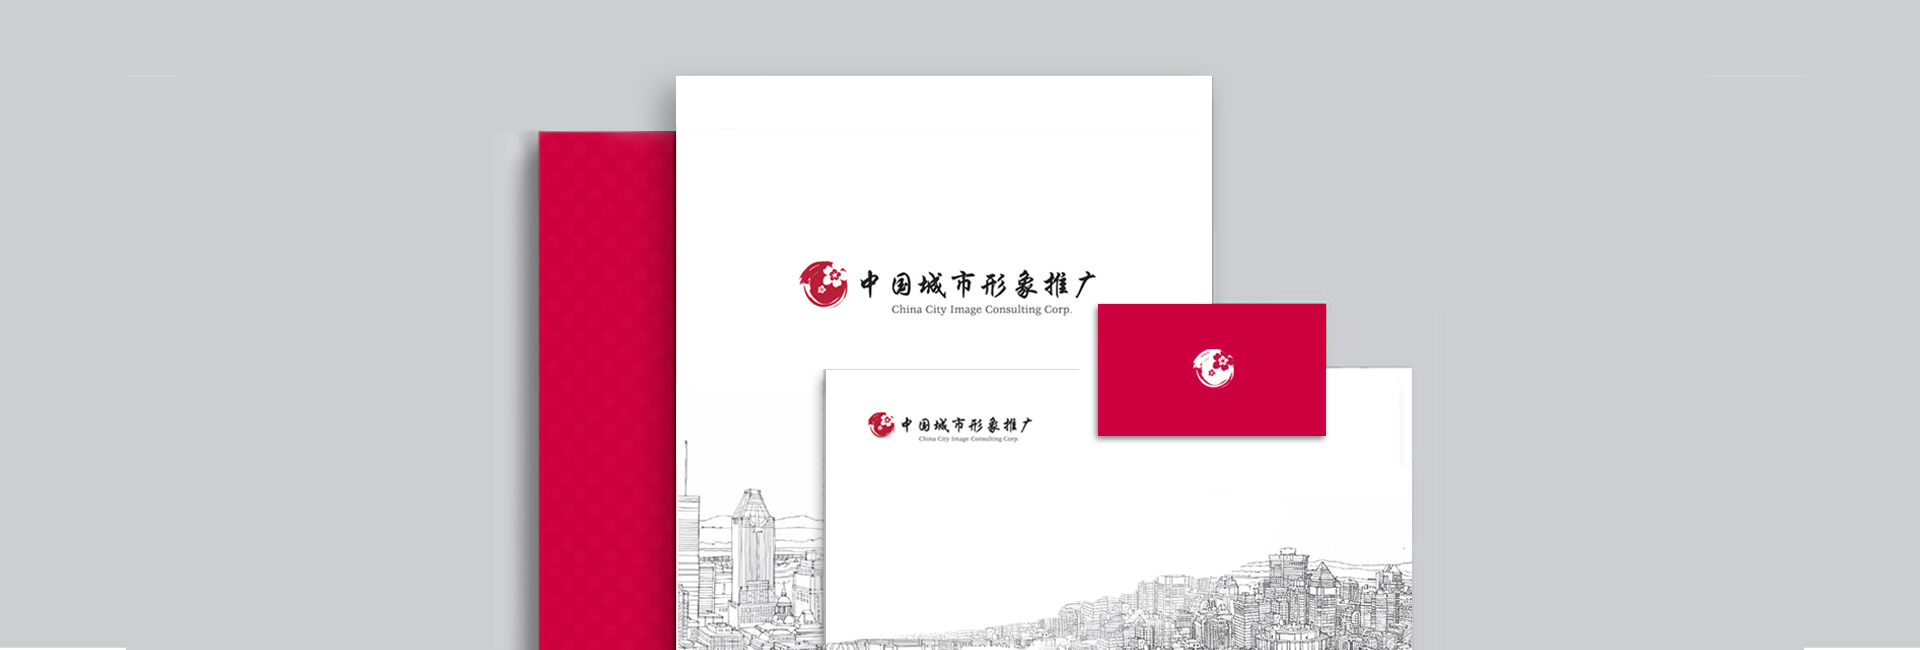 Branding – China City Image Consulting